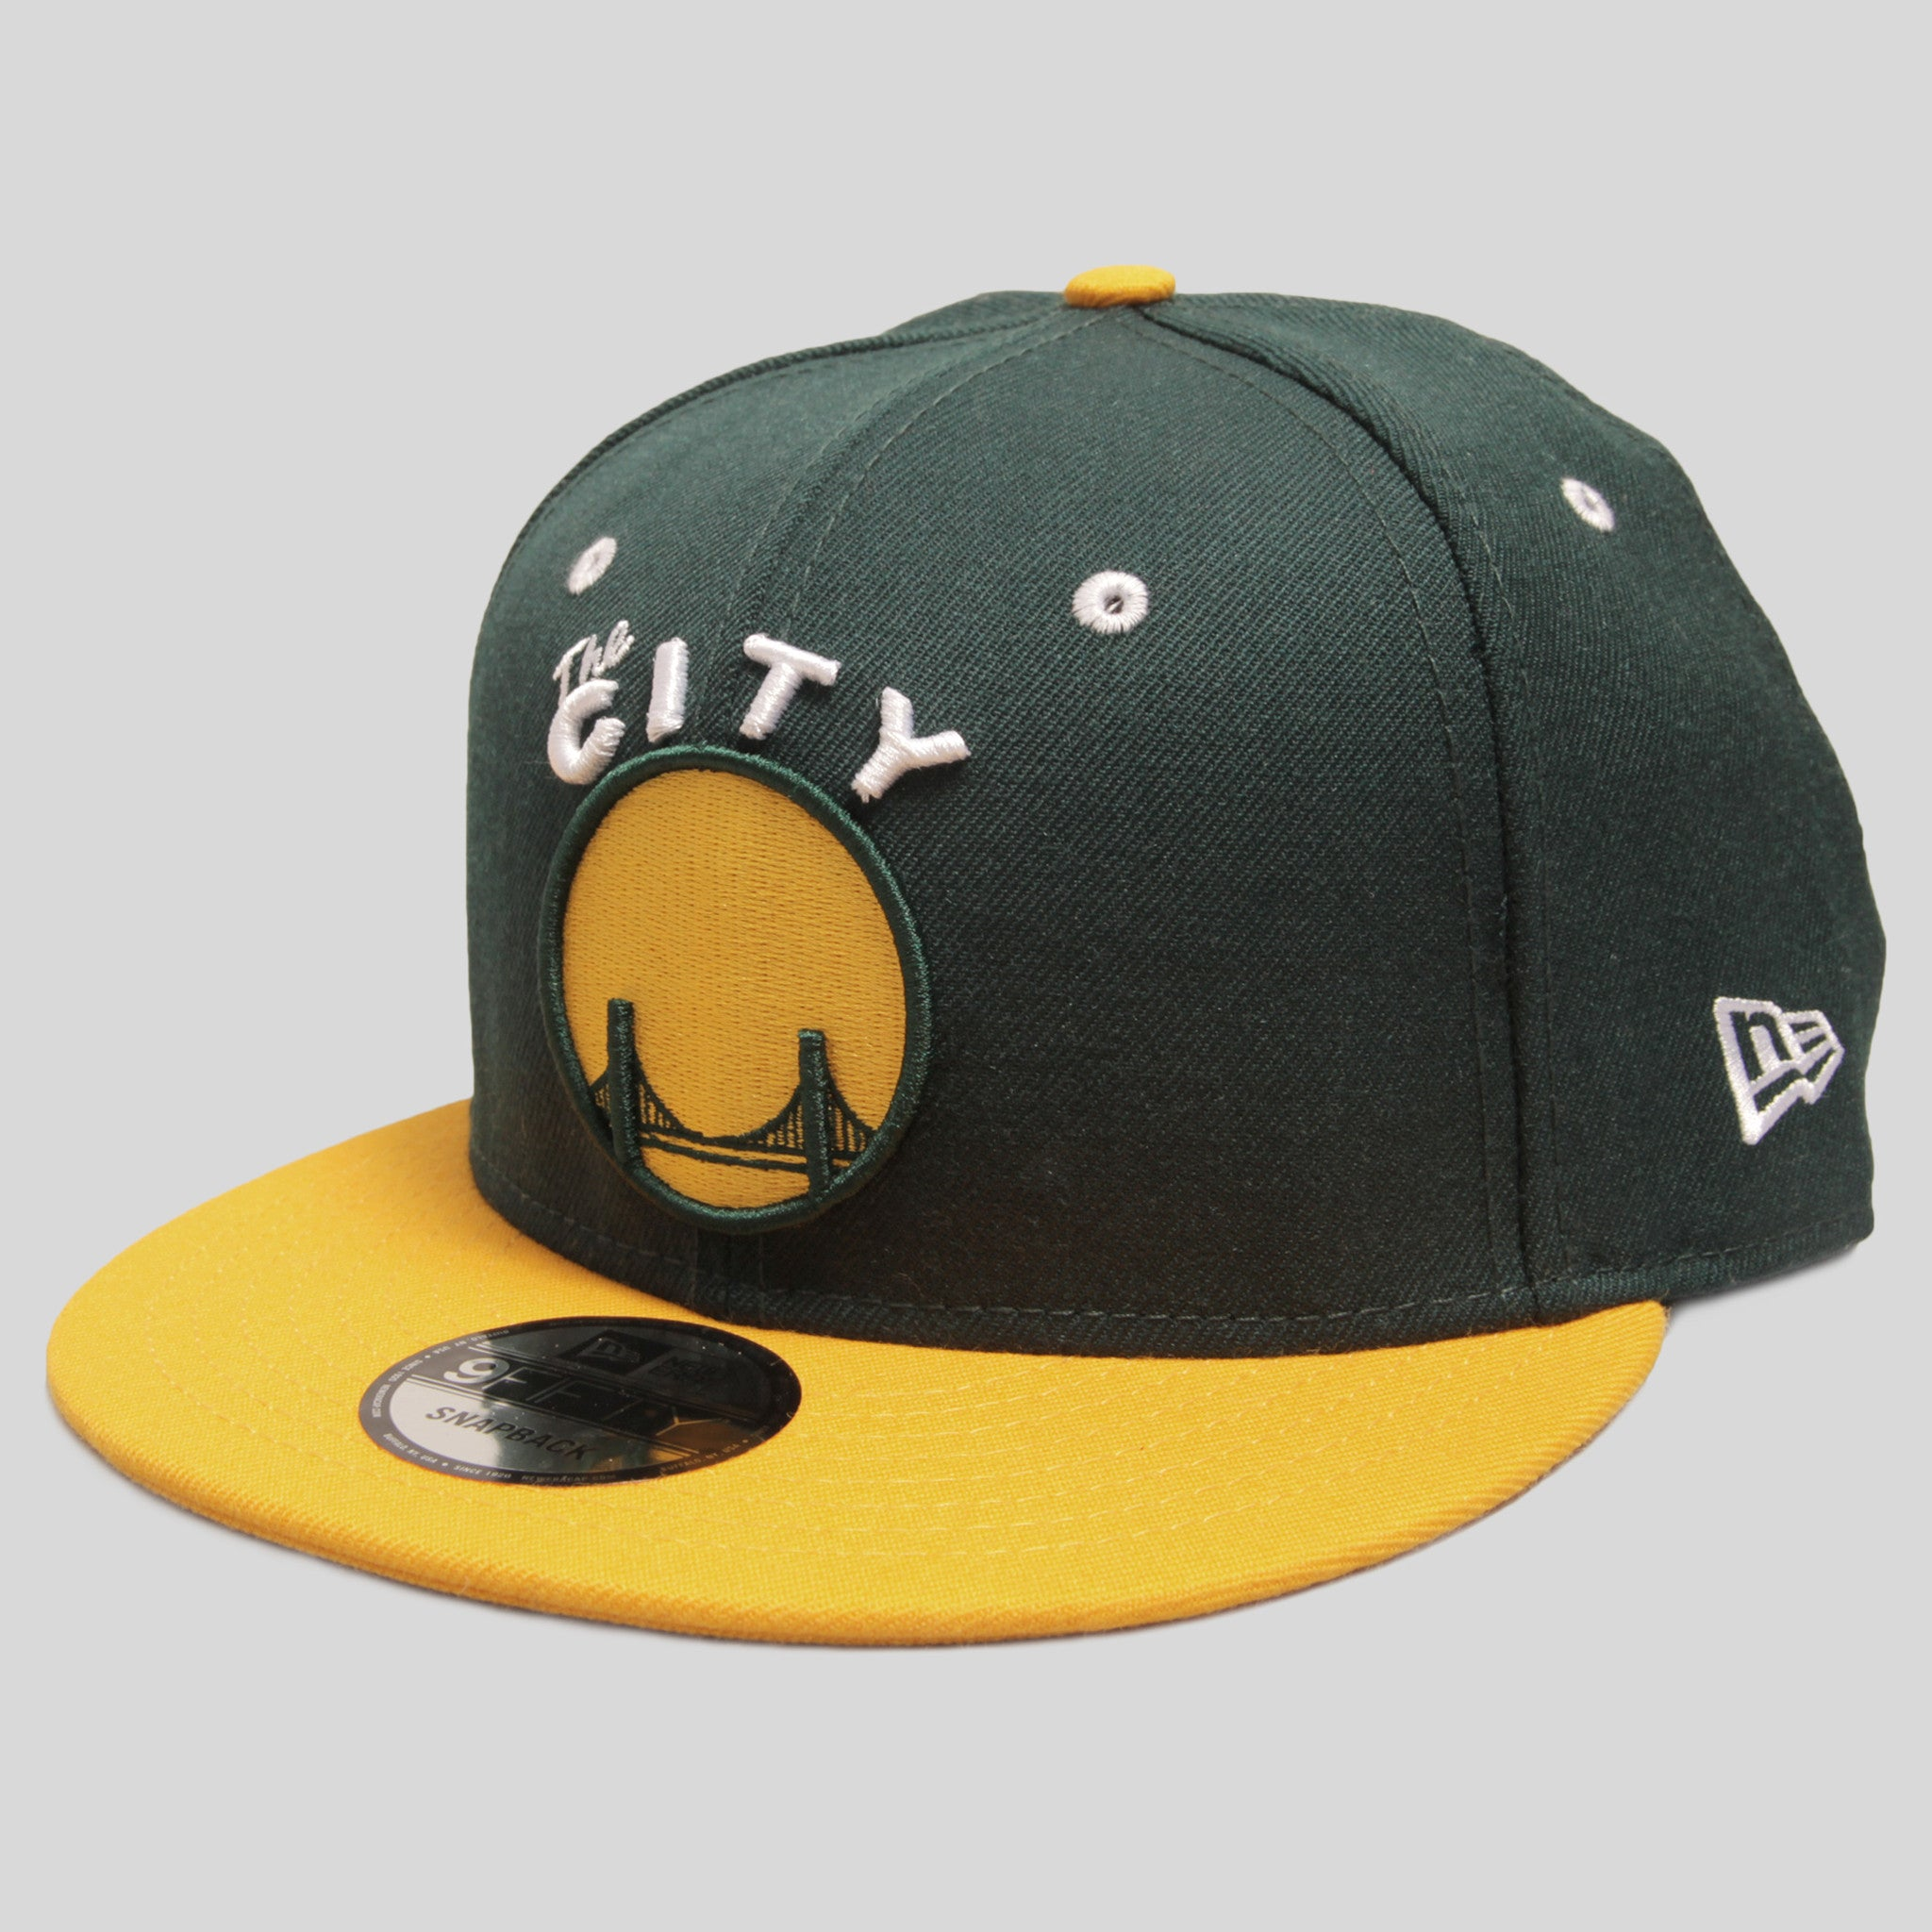 b3b8f66e65fd0 ... denmark upper playground lux the city new era snapback in green gold  921ee 9708a